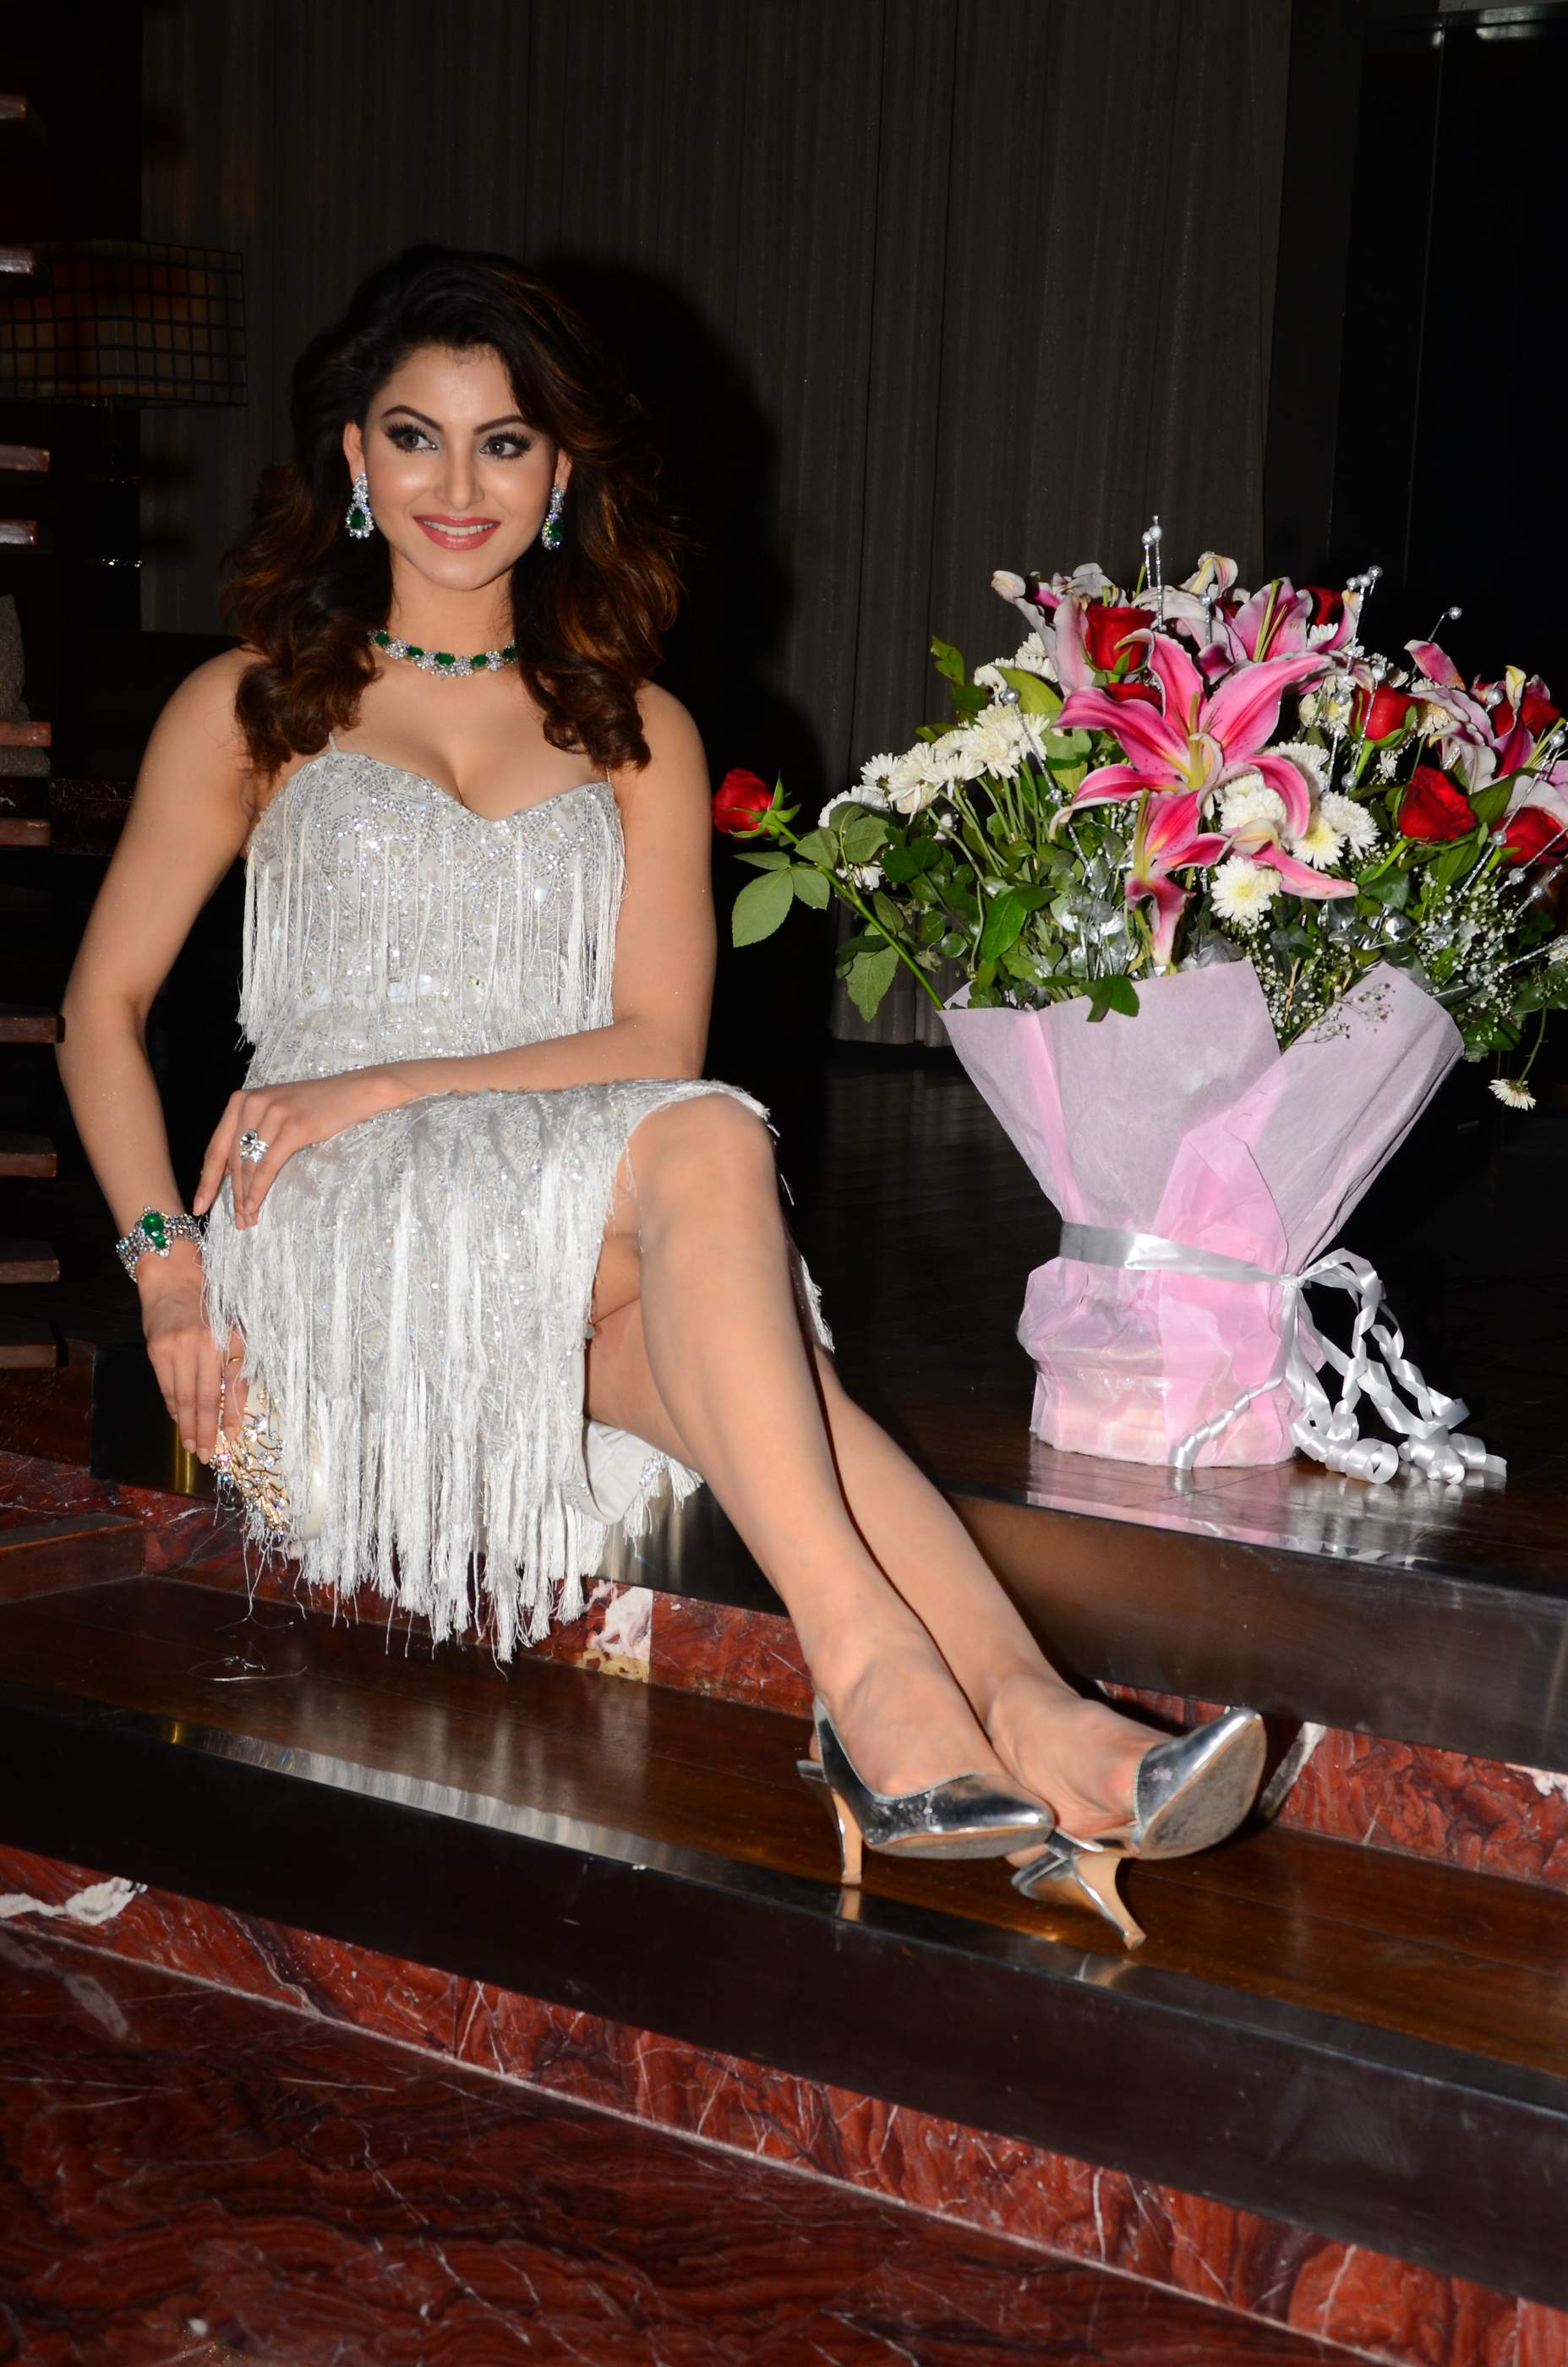 Brand New Pics Of Beautiful Urvashi Rautela |  Miss Diva | Miss Universe urvashi rautela Brand New Pics Of Beautiful Urvashi Rautela |  Miss Diva | Miss Universe Urvashi Rautela Birthday 41